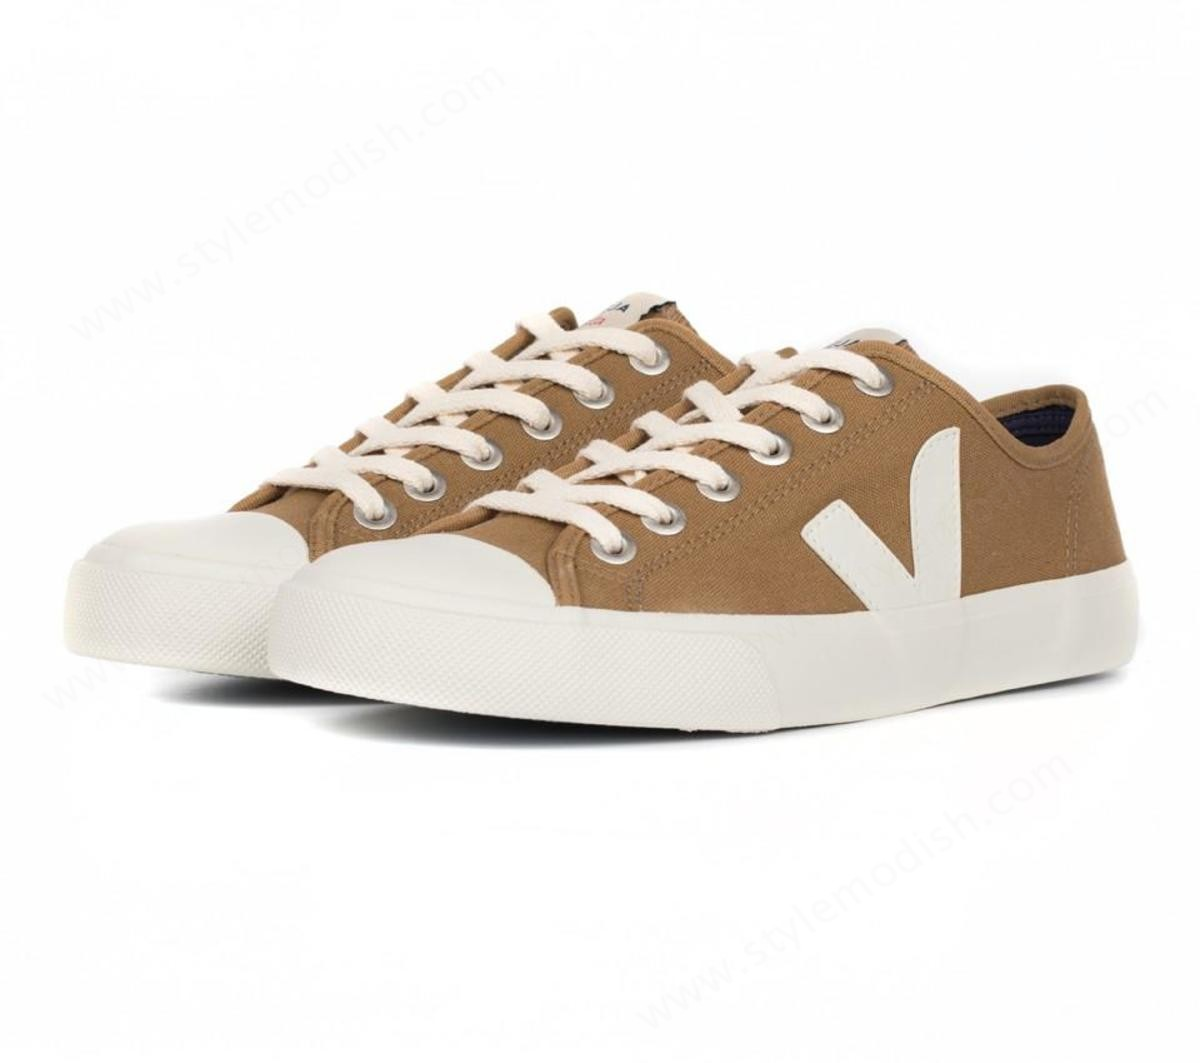 Mens's Unisex Veja Wata Shoes - Tent Pierre - -0